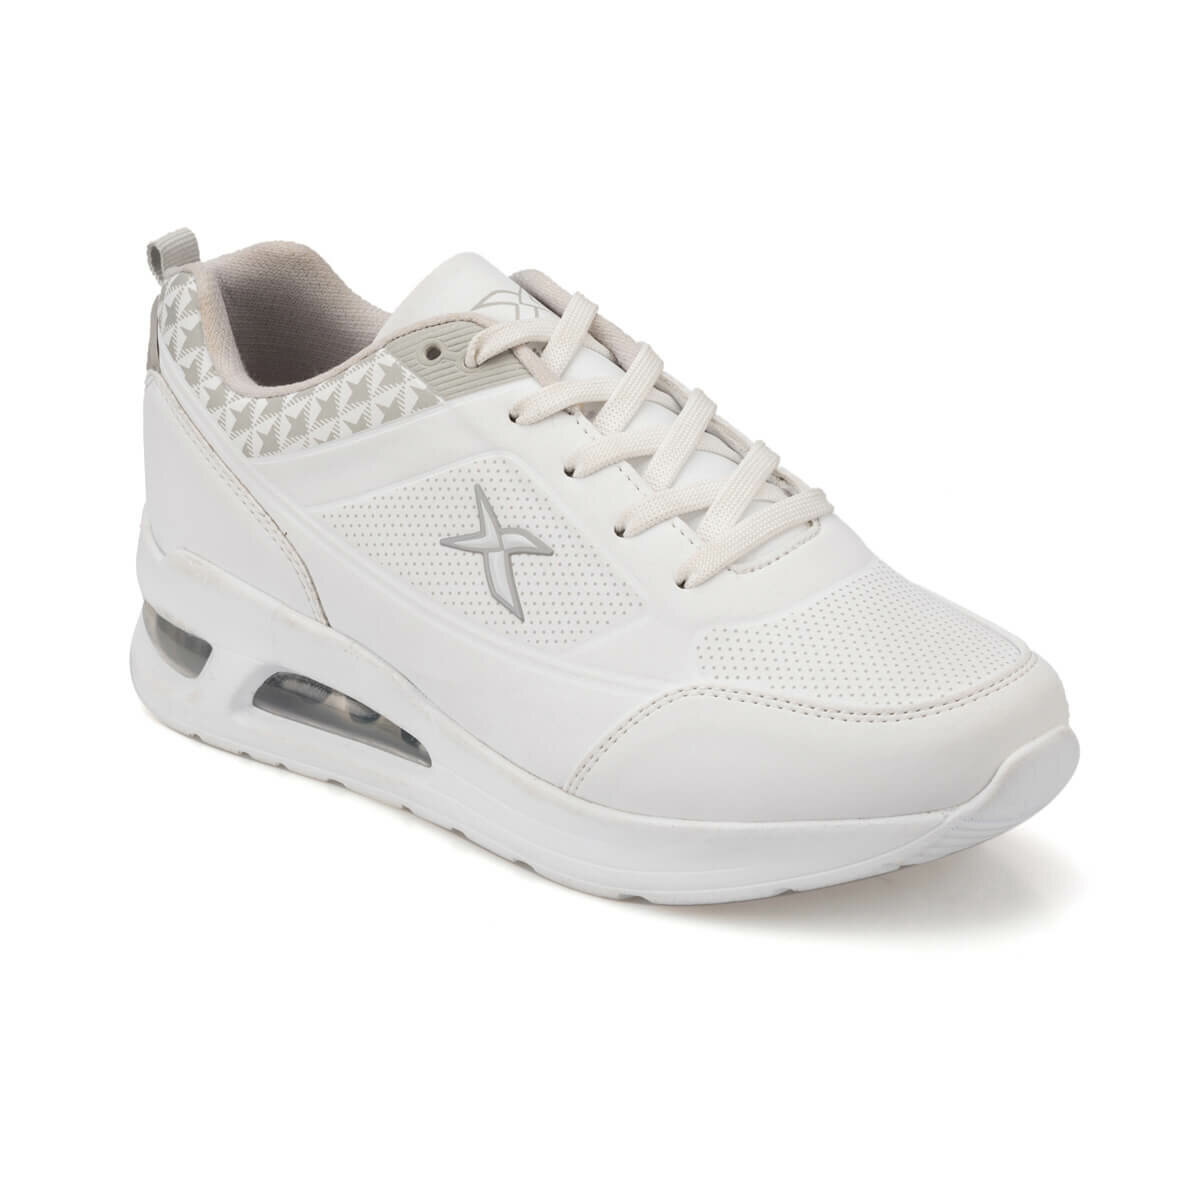 TONS Of FLO W 9PR White Women 'S Sneaker Shoes KINETIX